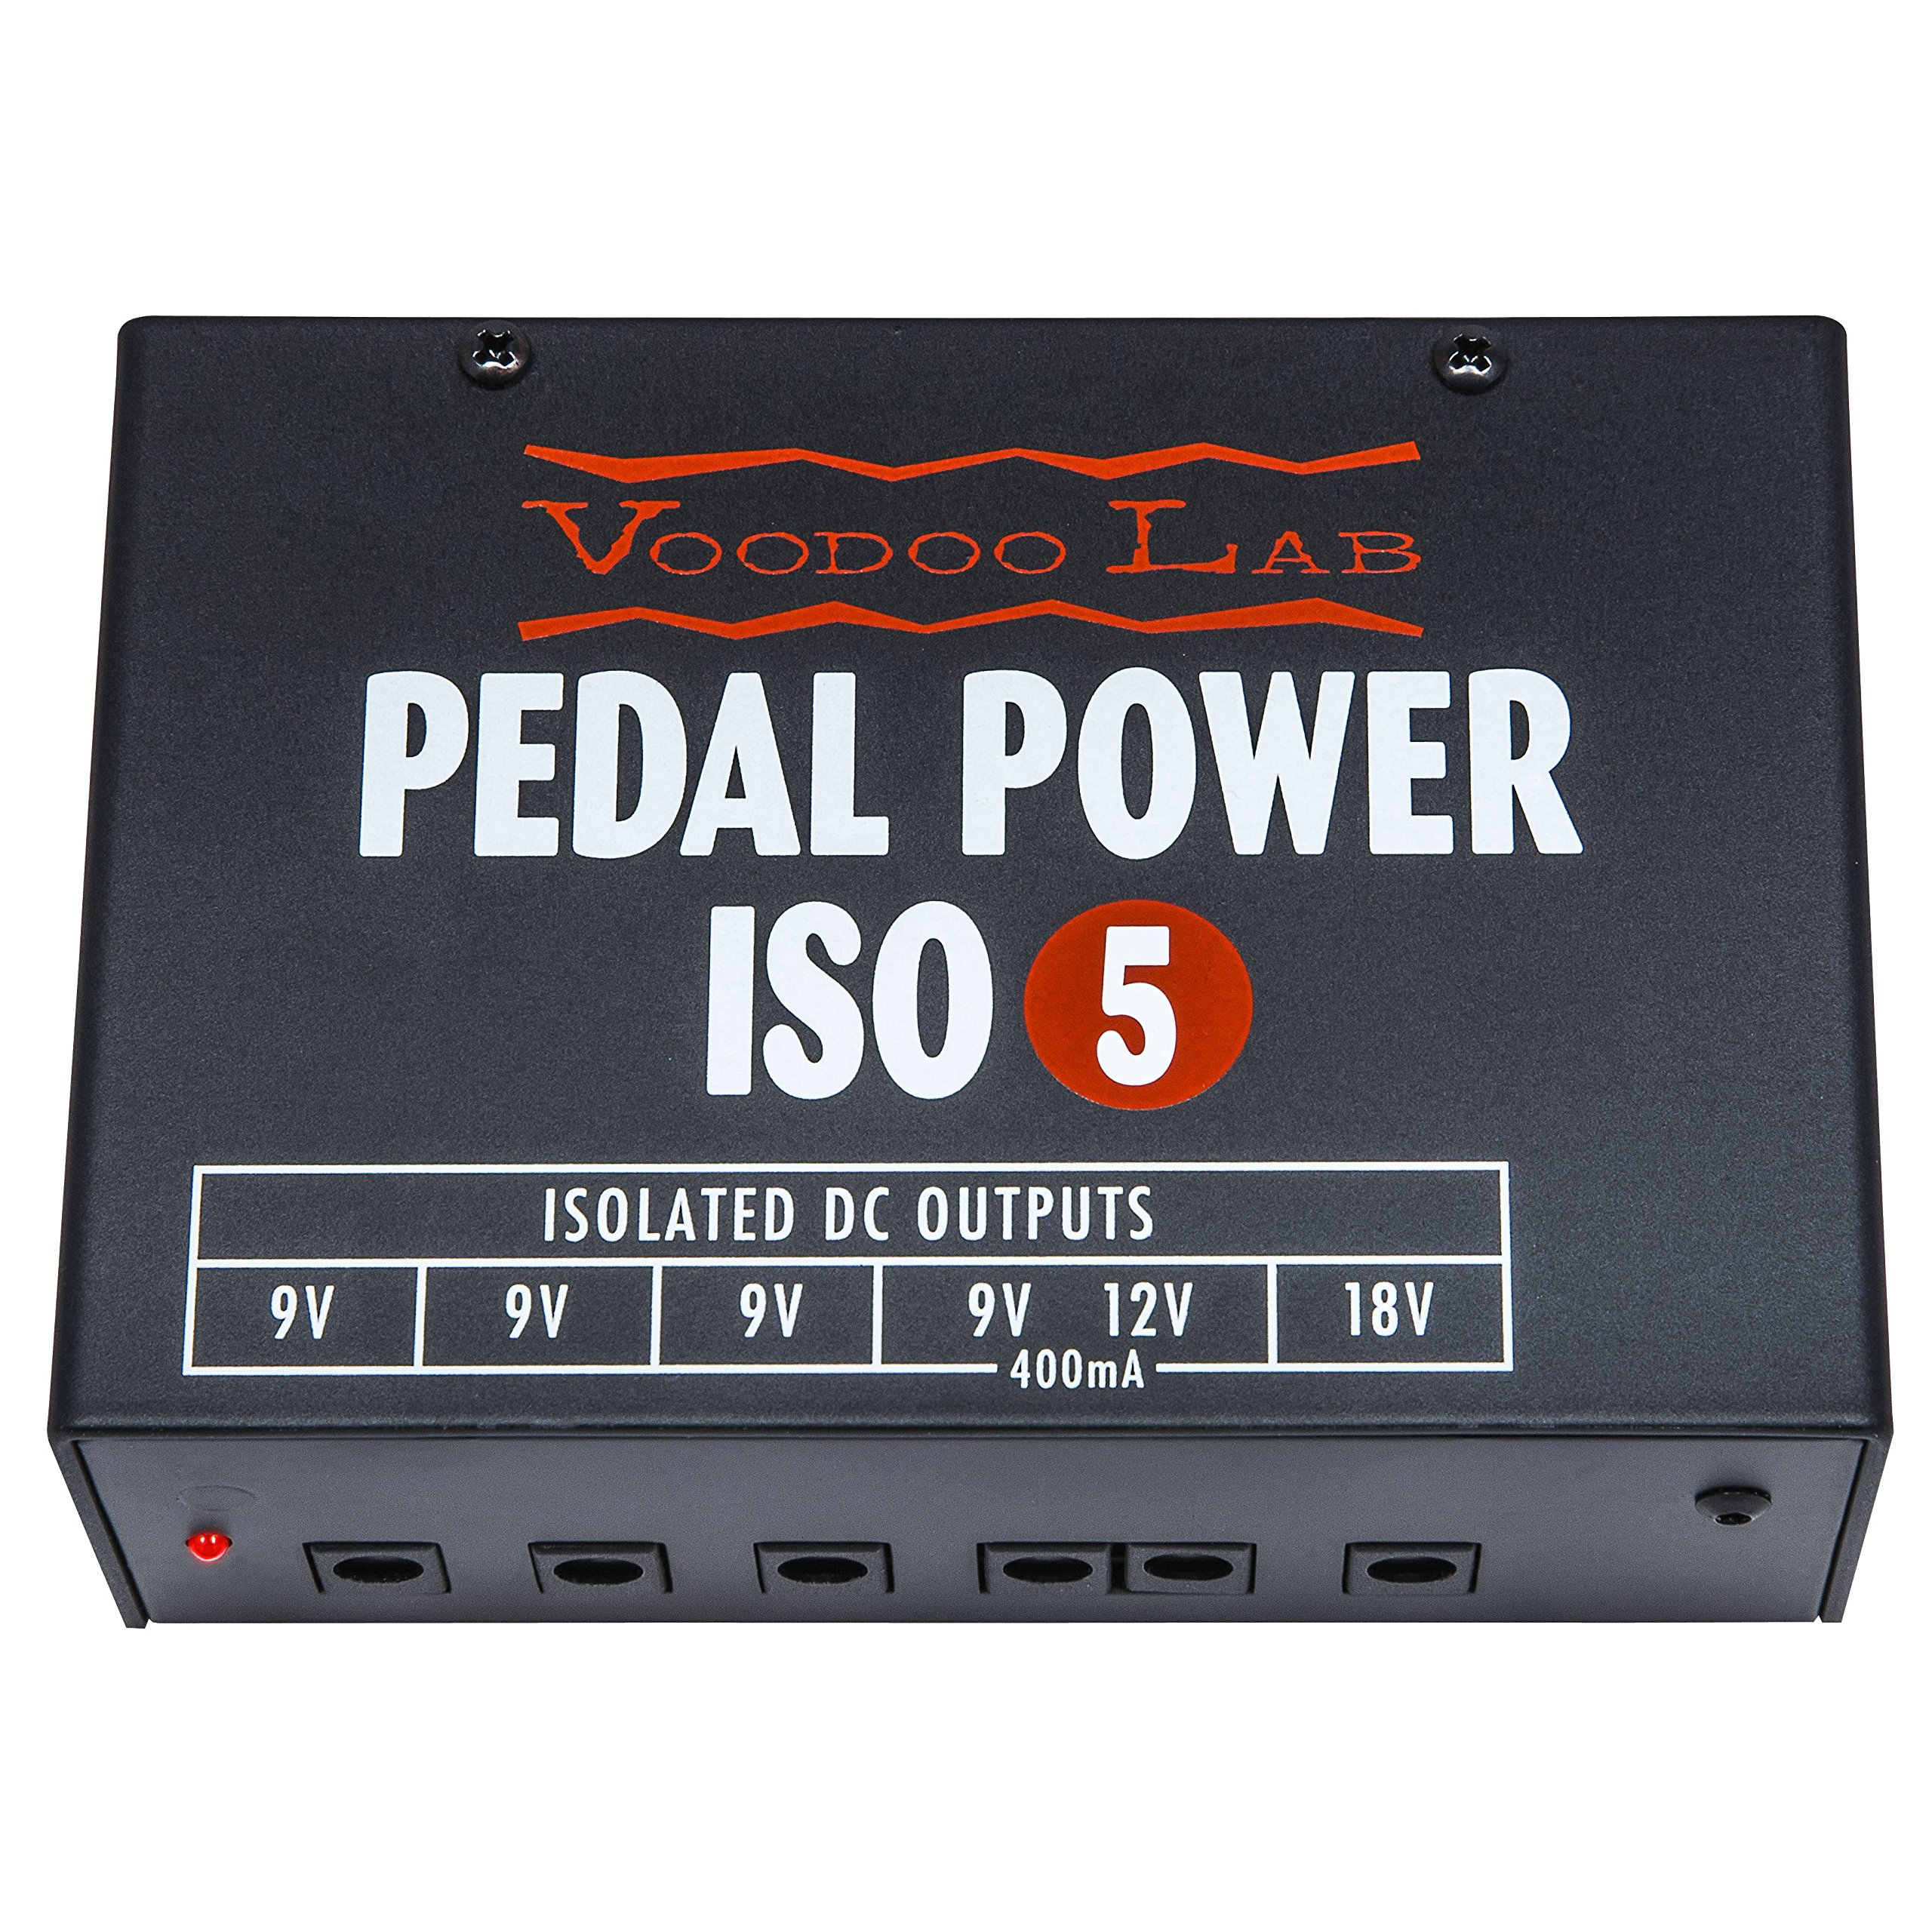 Voodoo Lab Pedal Power ISO-5 Isolated Power Supply